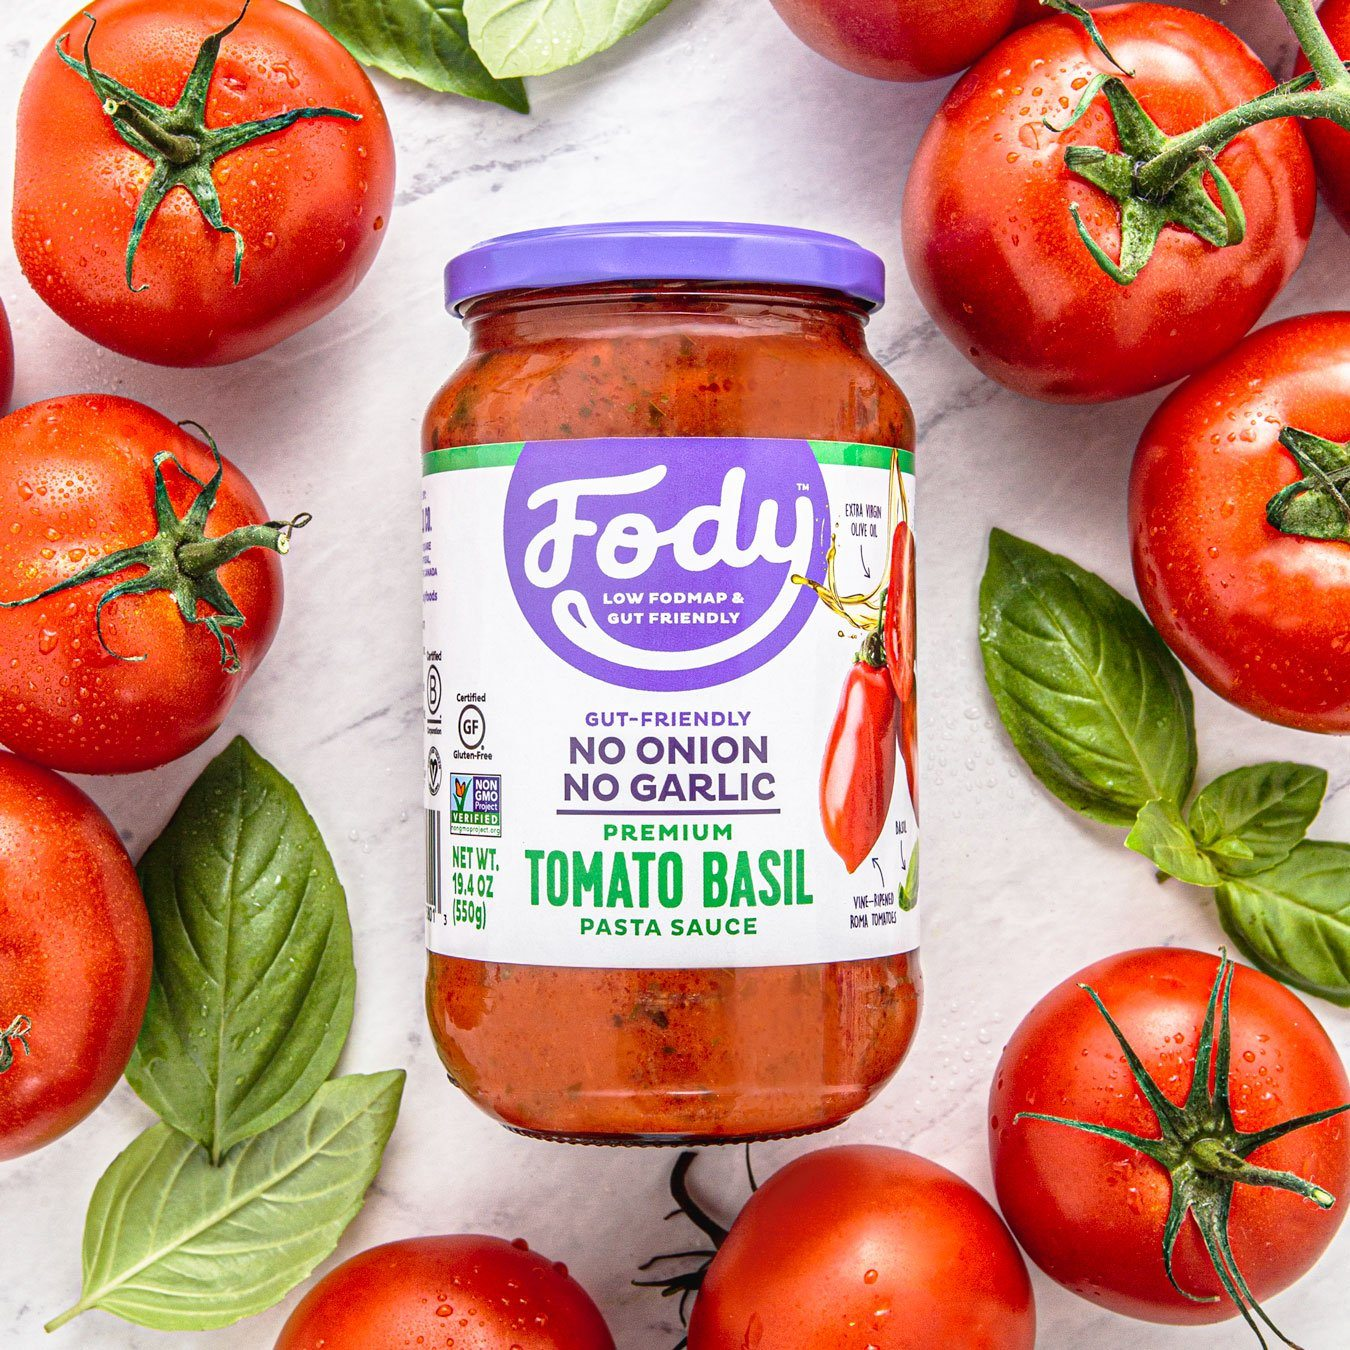 Low FODMAP <br><b><big>Tomato & Basil Pasta  Sauce </big></b><br>6-Pack <br><small>No Onion, No Garlic & Gluten-Free!</small>